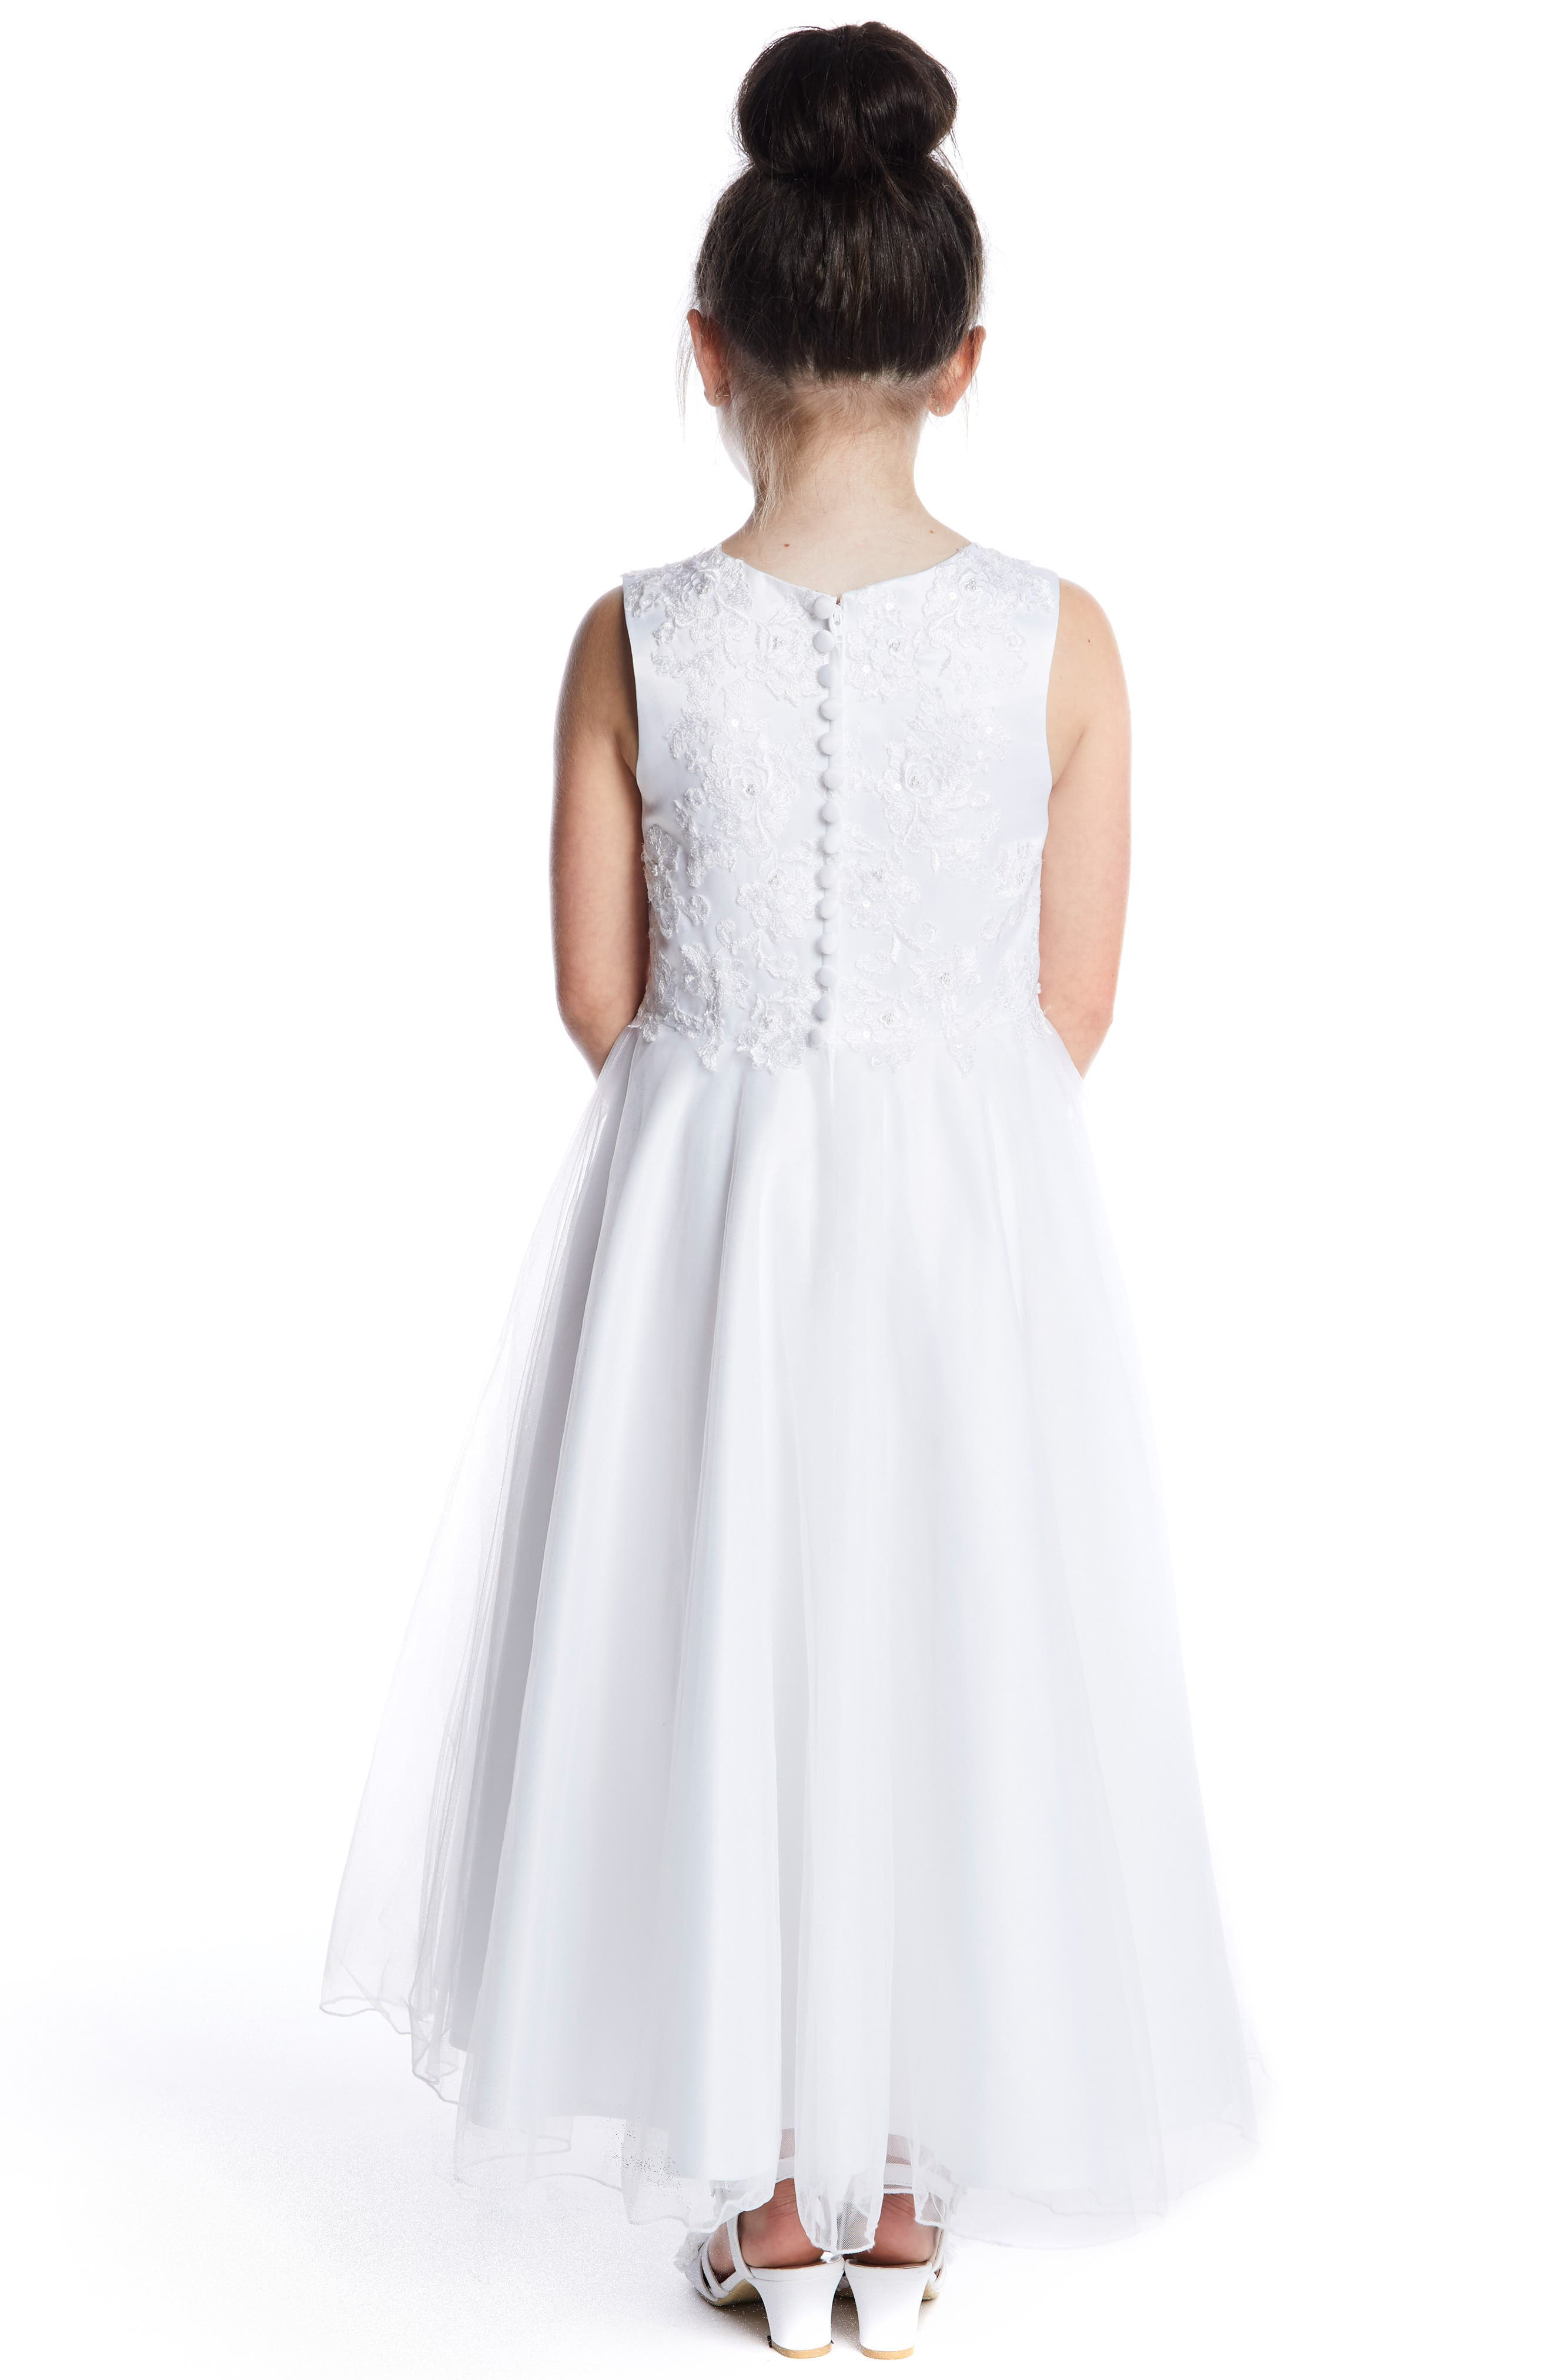 LAUREN MARIE, Embroidered Bodice Tulle Dress, Alternate thumbnail 3, color, WHITE